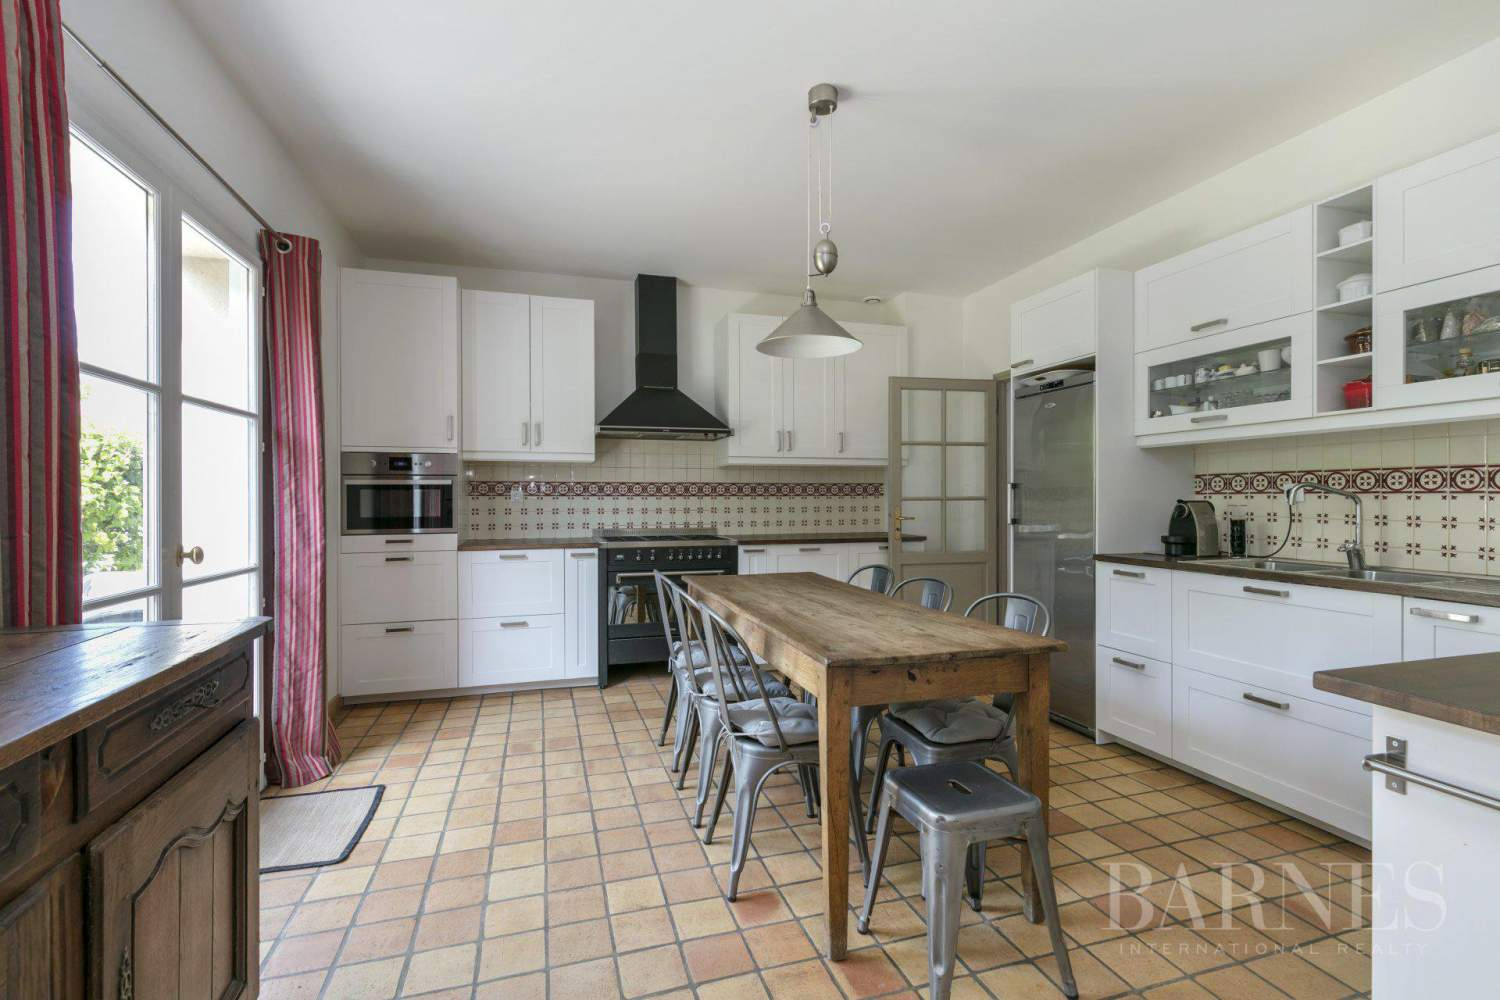 CENTRE OF NOISY-LE-ROI, 330m² (3,552 sq ft) FAMILY HOUSE, 5 BEDROOMS, 500m² (5,382 sq ft), SEPARATE STUDIO picture 2